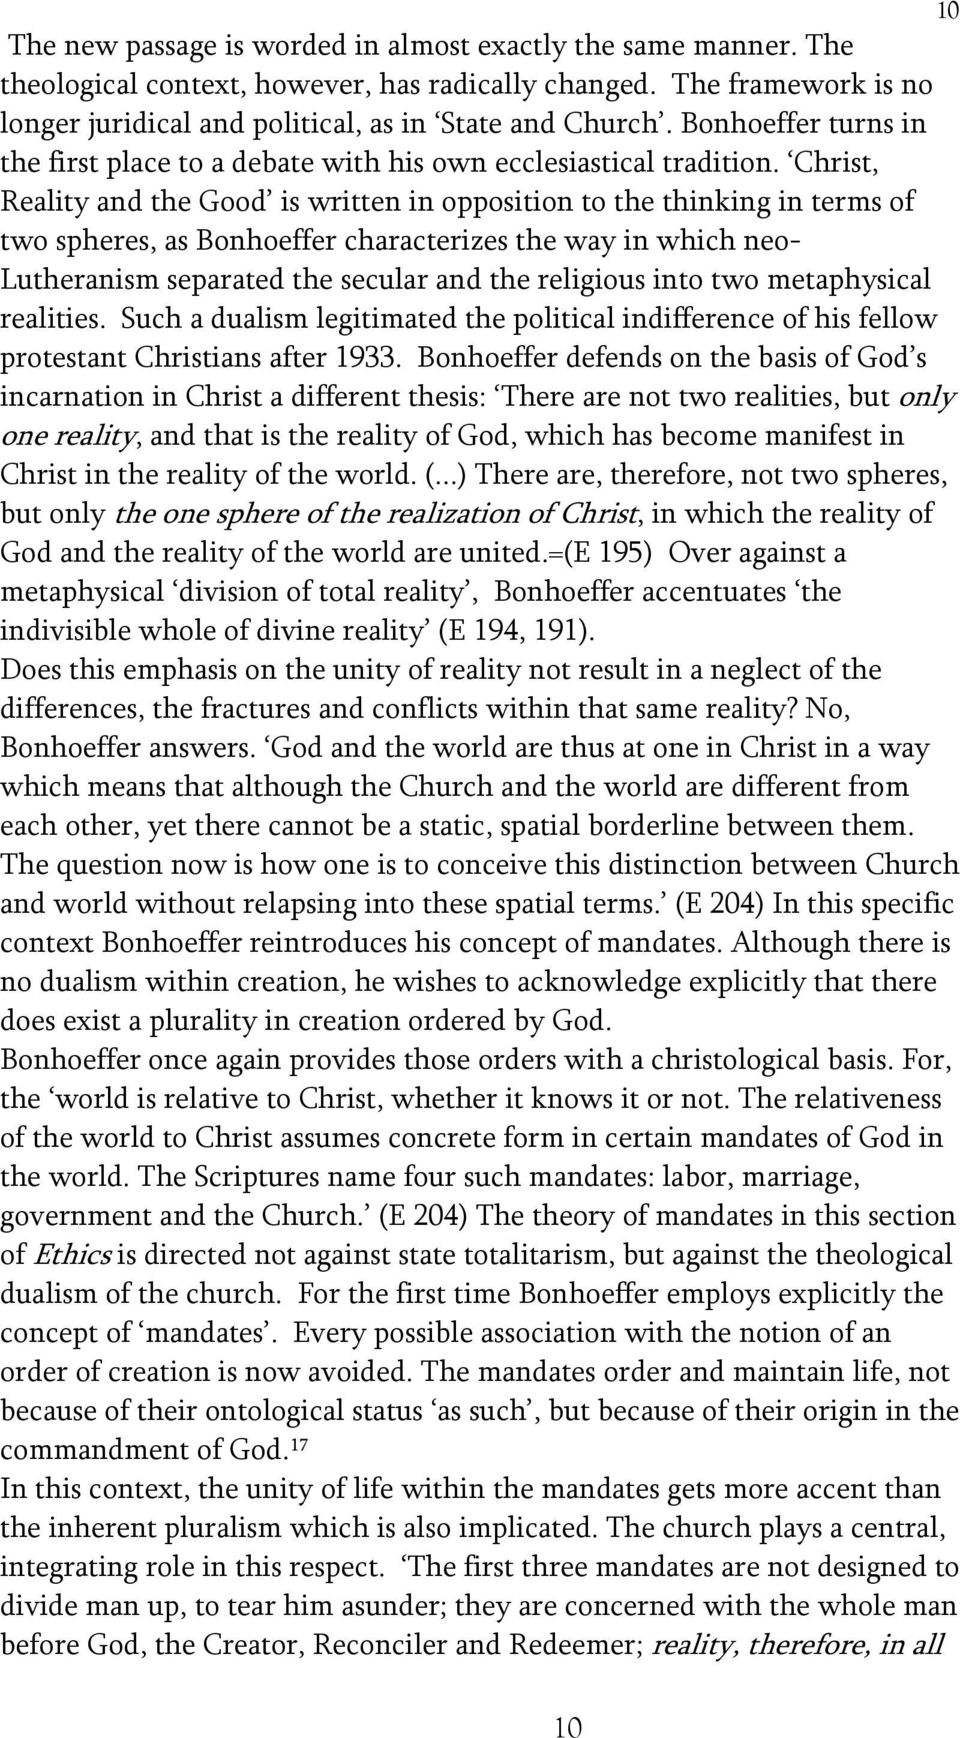 Christ, Reality and the Good is written in opposition to the thinking in terms of two spheres, as Bonhoeffer characterizes the way in which neo- Lutheranism separated the secular and the religious